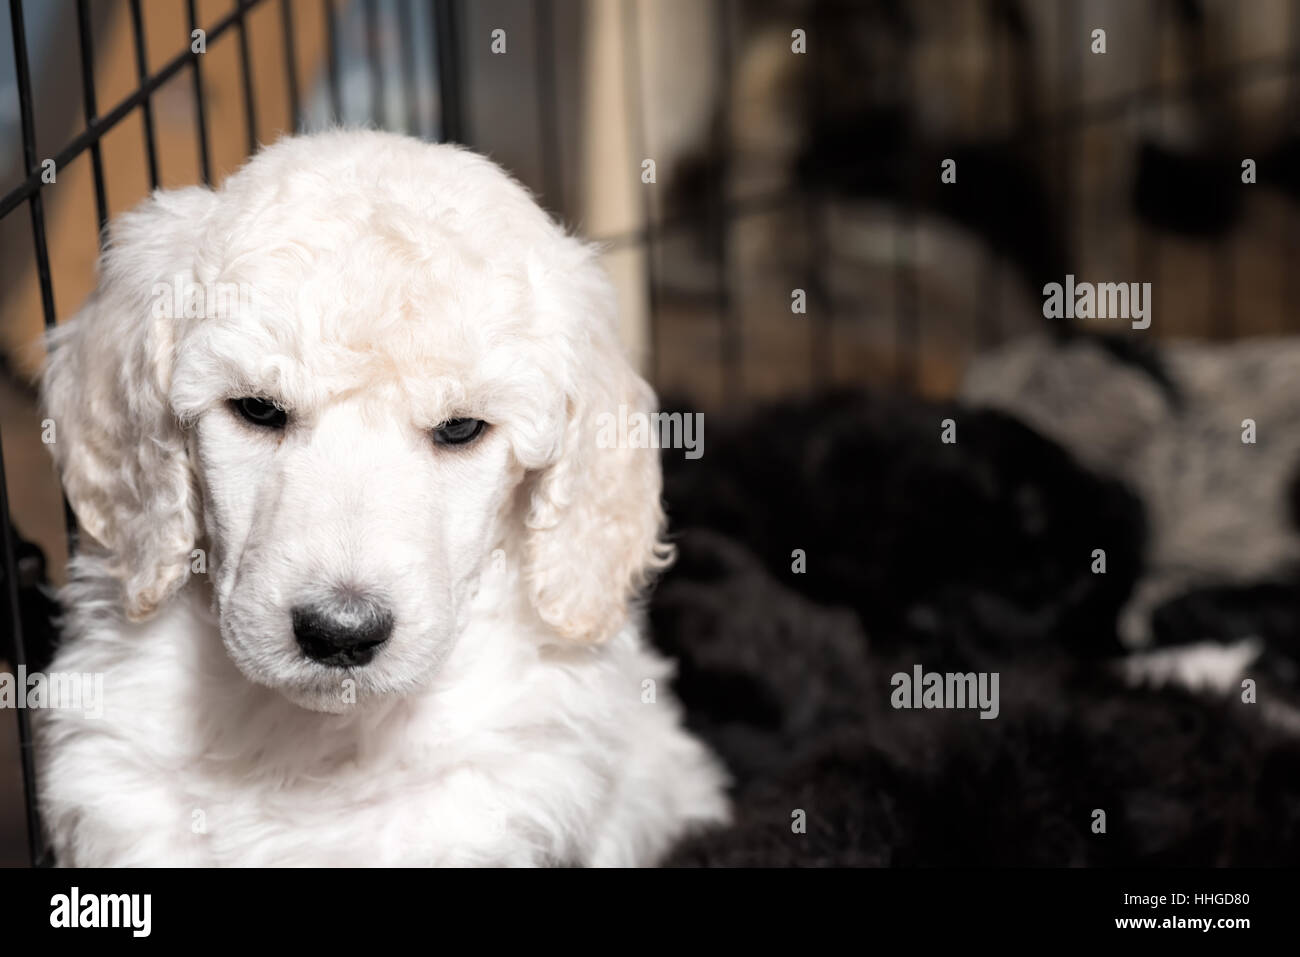 White Standard Poodle Puppy With Wavy Fur And Black Snout